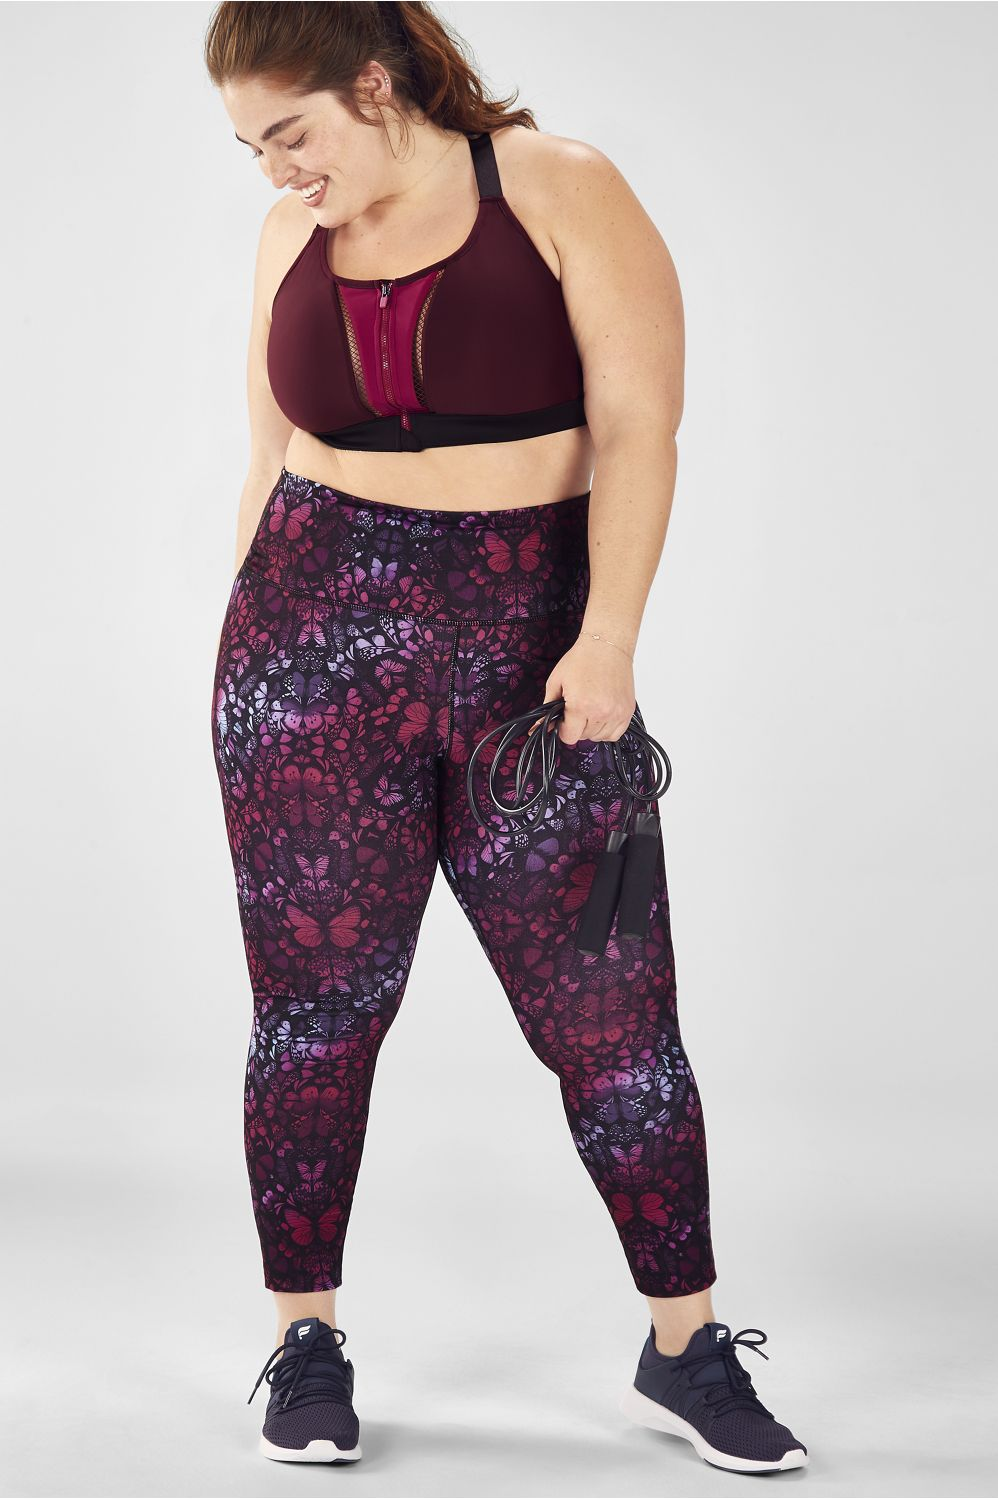 Fabletics Plus Size Cross Train 2-Piece Outfit